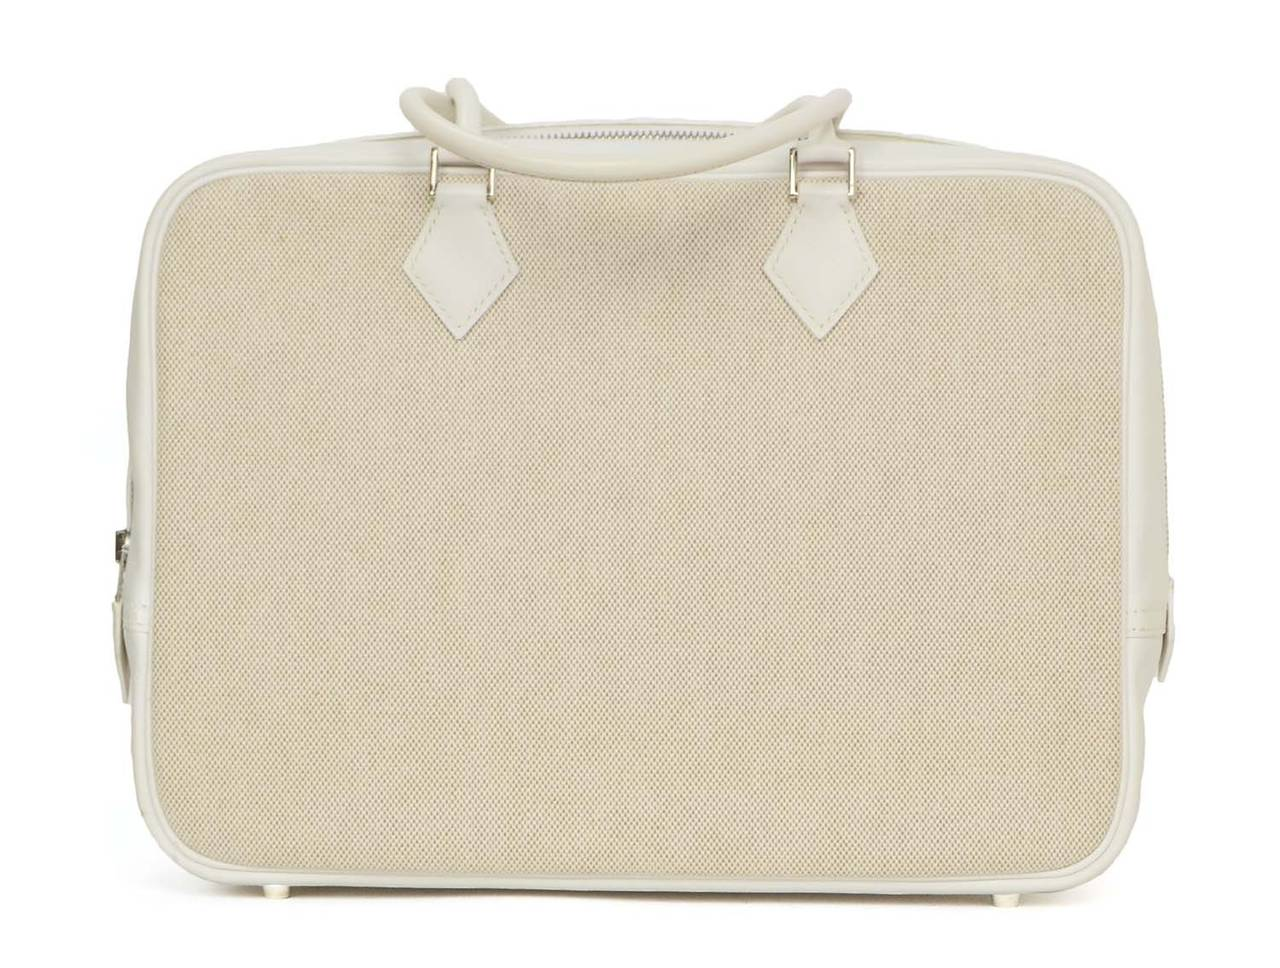 HERMES Beige Canvas & White Leather Plume Bag PHW 3